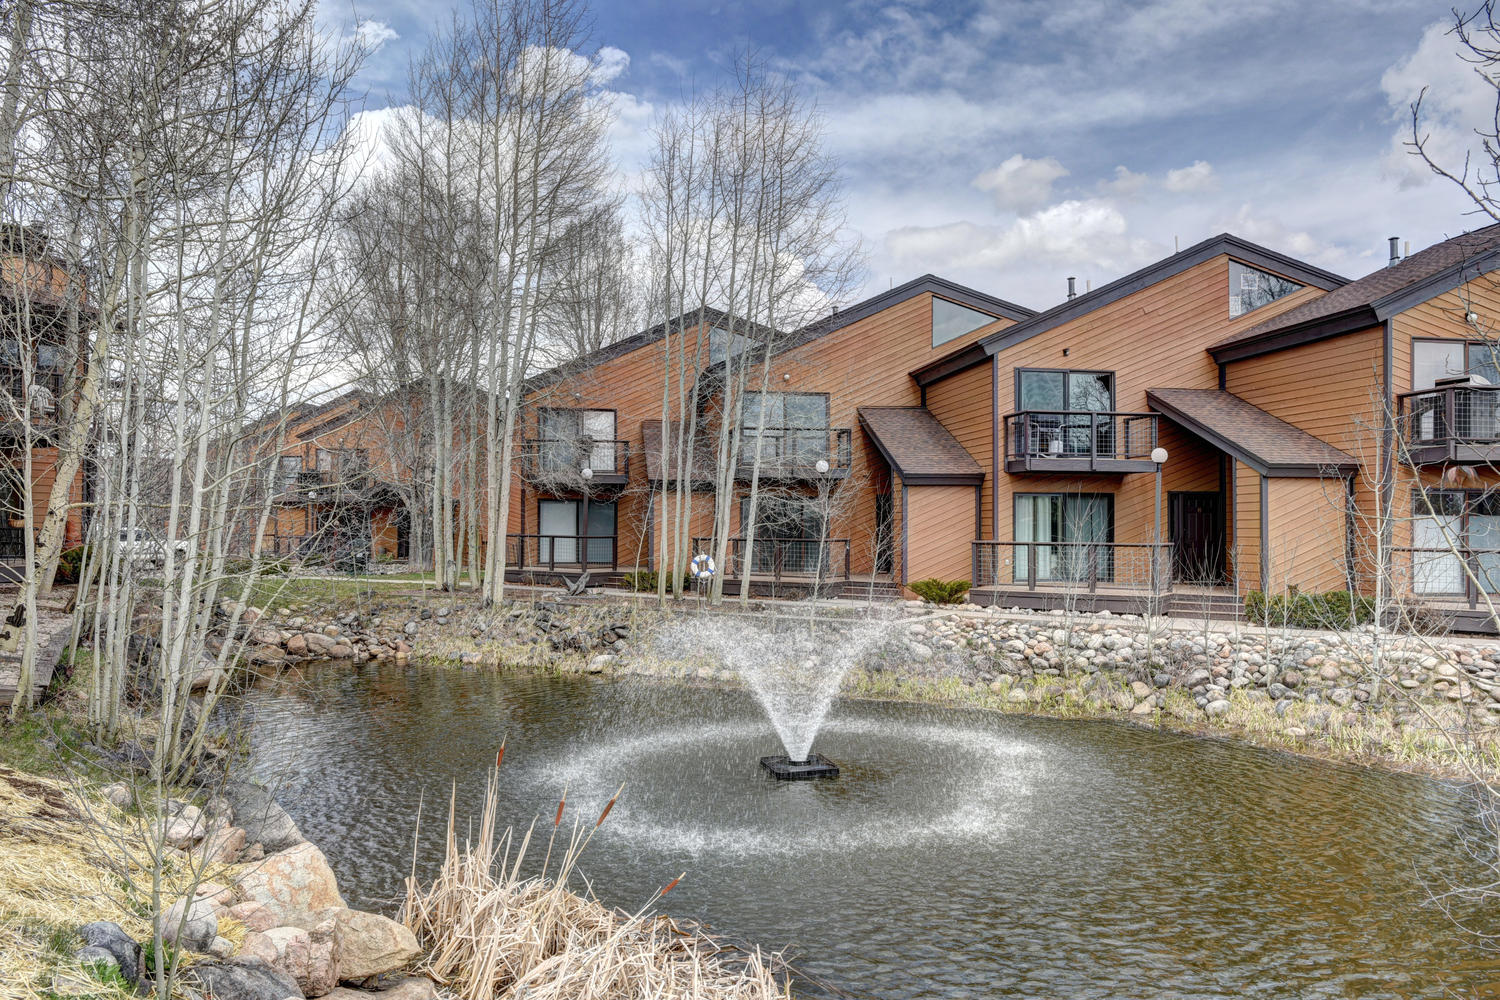 Single Family Home for Sale at Wonderful townhome with gorgeous views 524 Sunriver Dr Fraser, Colorado, 80442 United States